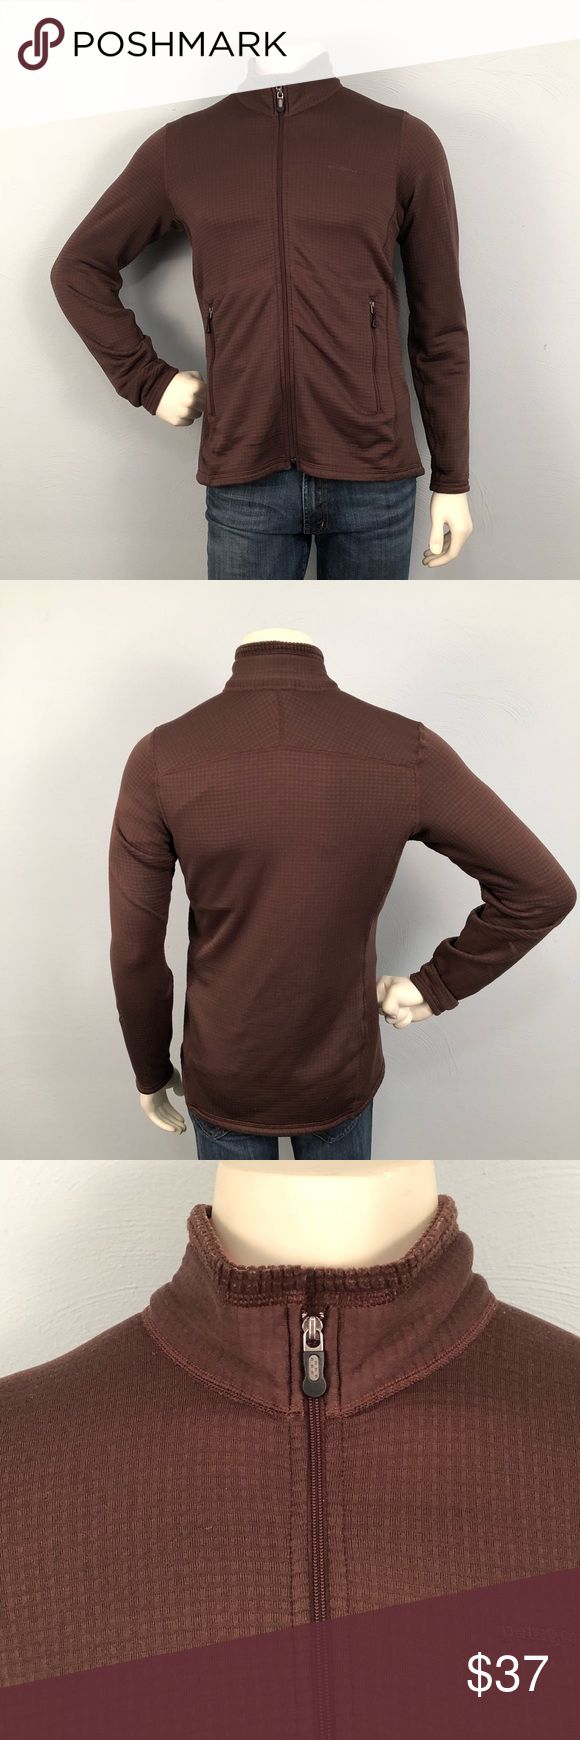 Patagonia Zip-Up Sweater size Large This Sweater Jacket is in great condition. There is an R embroidered on the arm that is barely visible and above that there is a couple dark spots in the fabric. Priced accordingly. Please feel free to ask further questions and all offers will be considered. Patagonia Sweaters